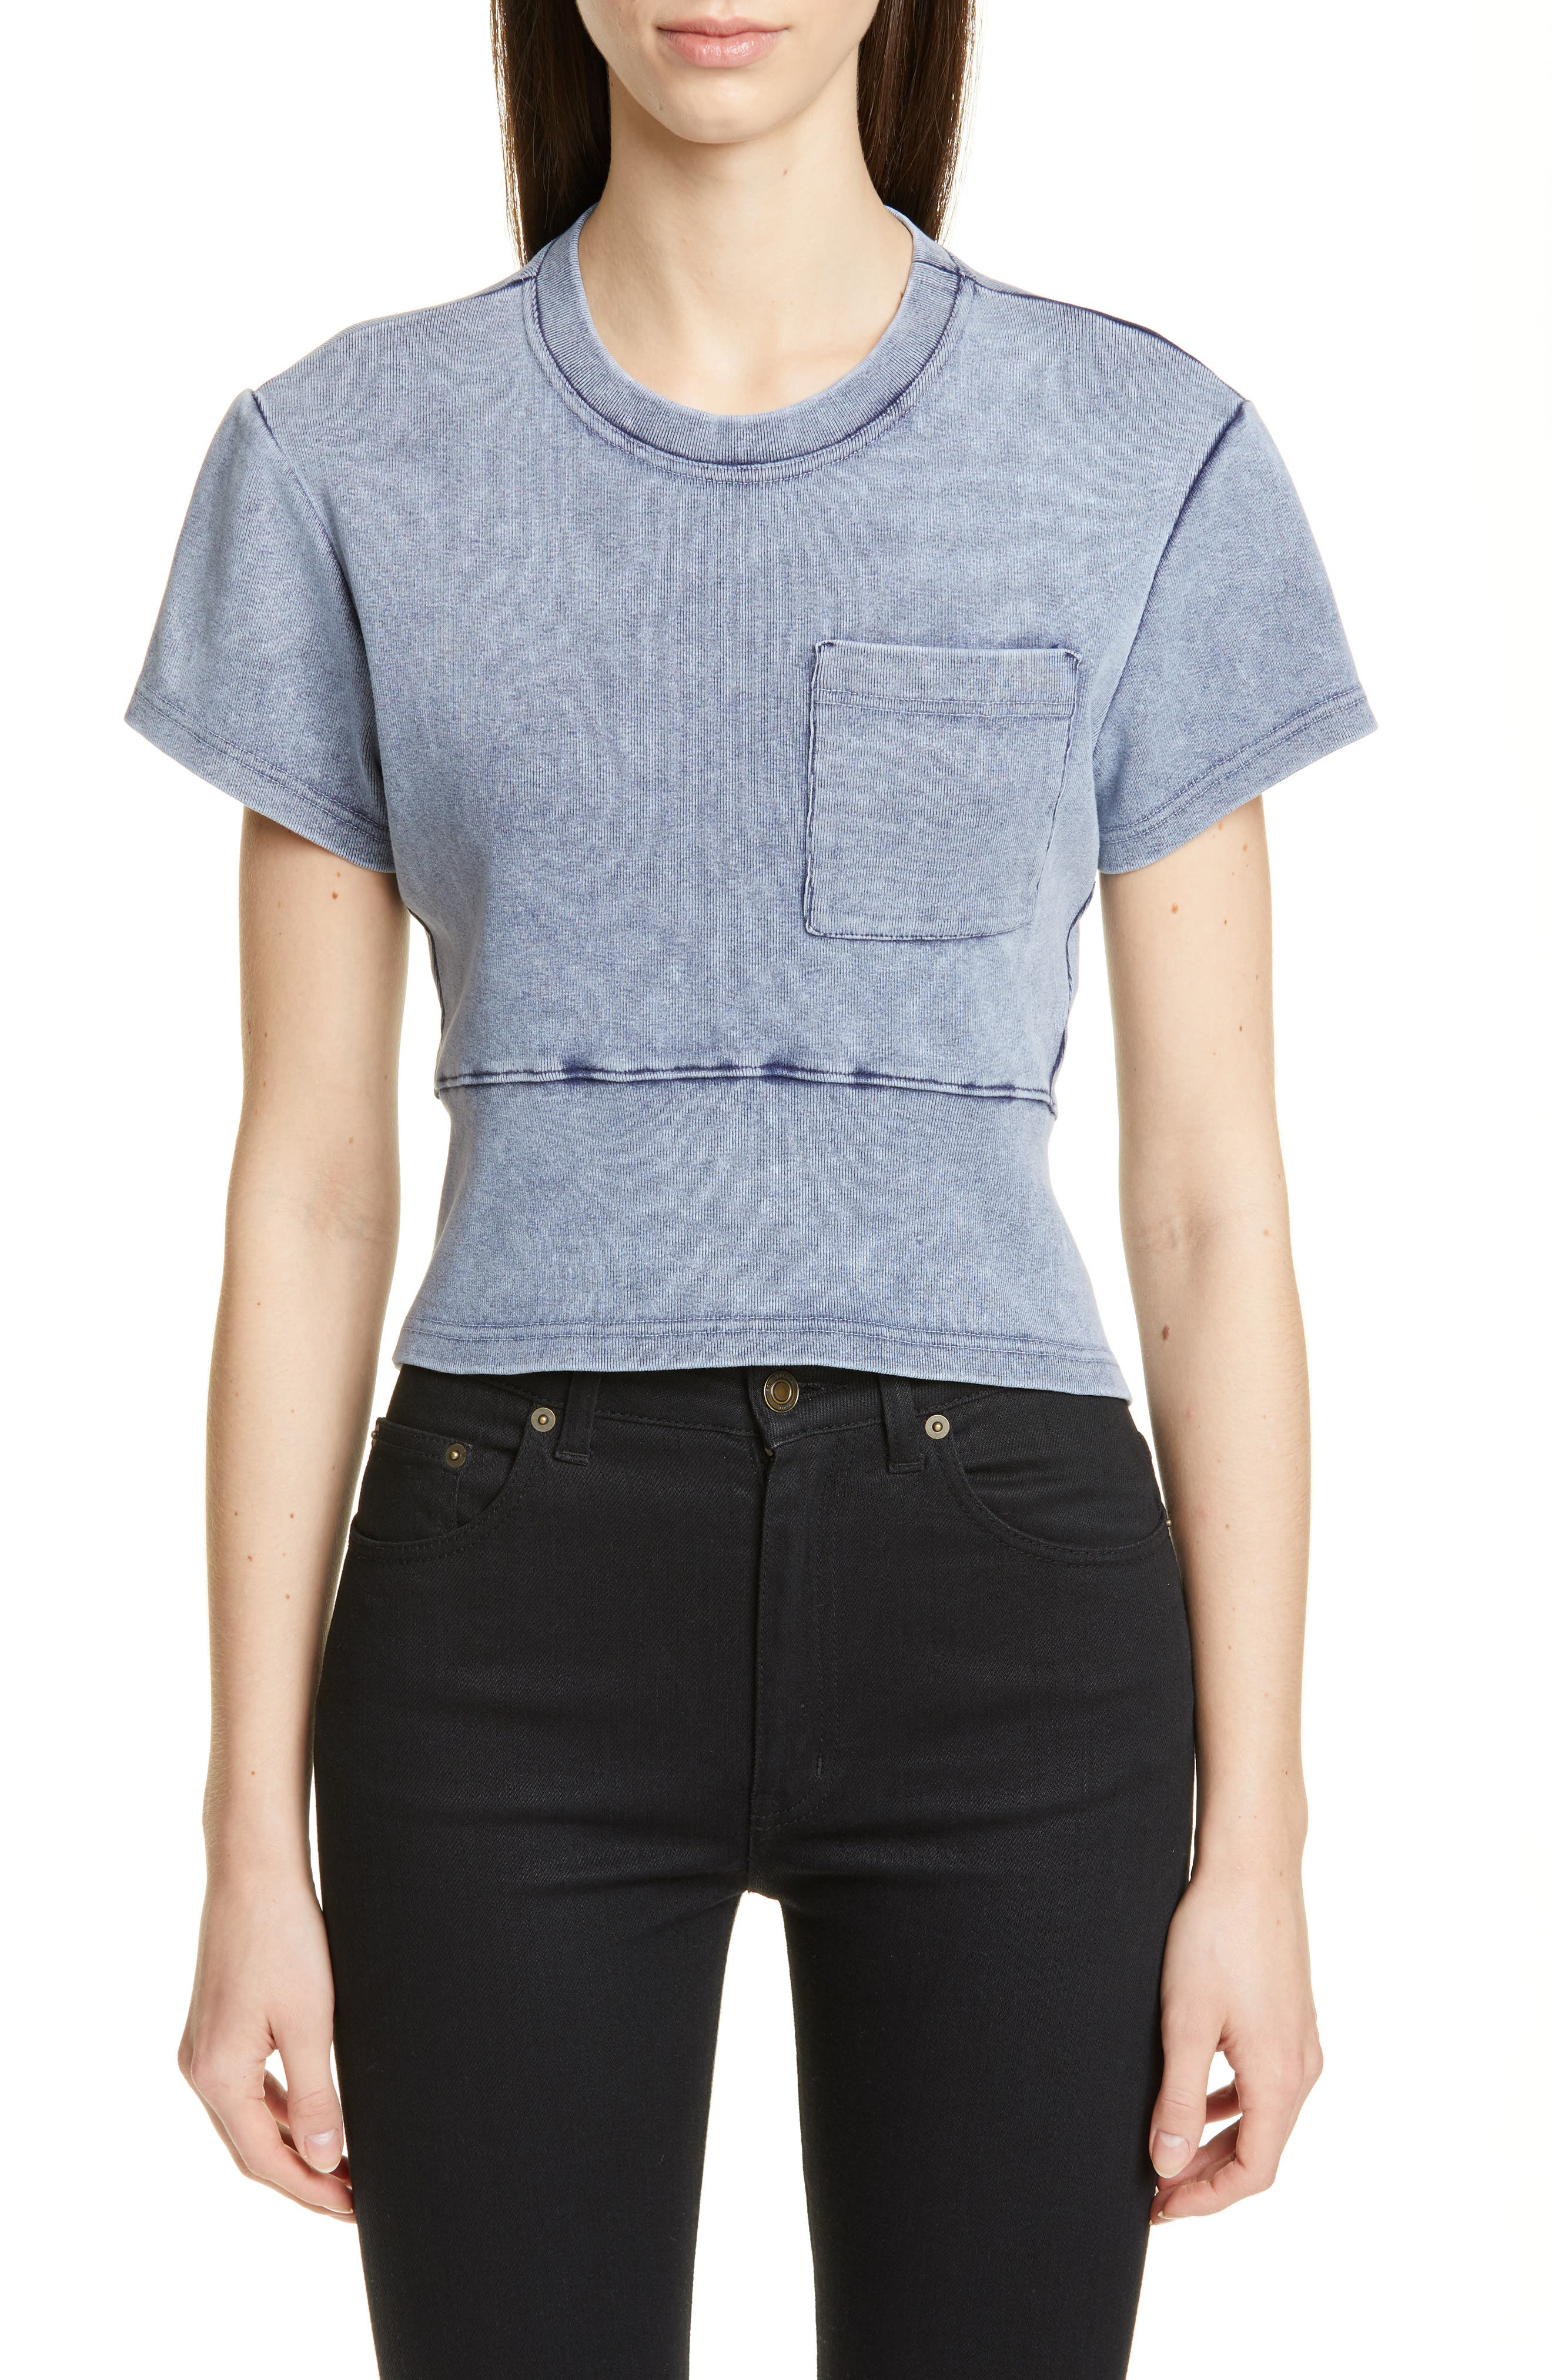 PROENZA SCHOULER, Washed Jersey Top, Main thumbnail 1, color, WASHED ACID